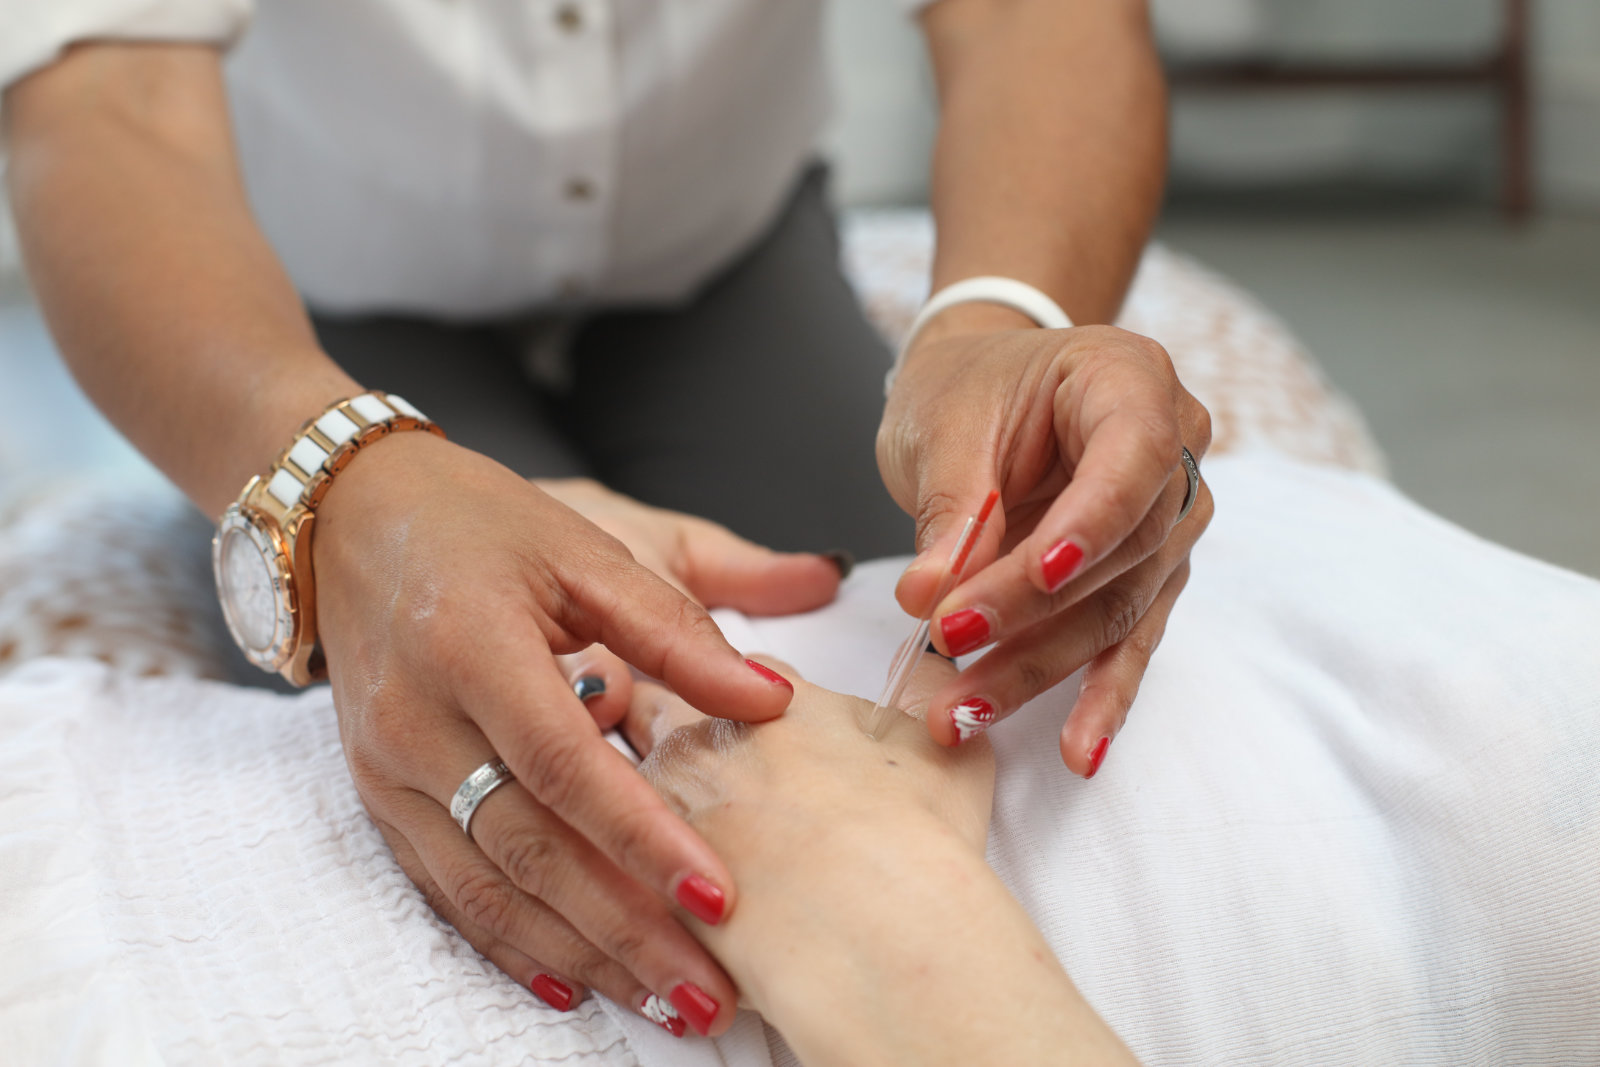 An acupuncturist administers needle treatment to a patient's hand.